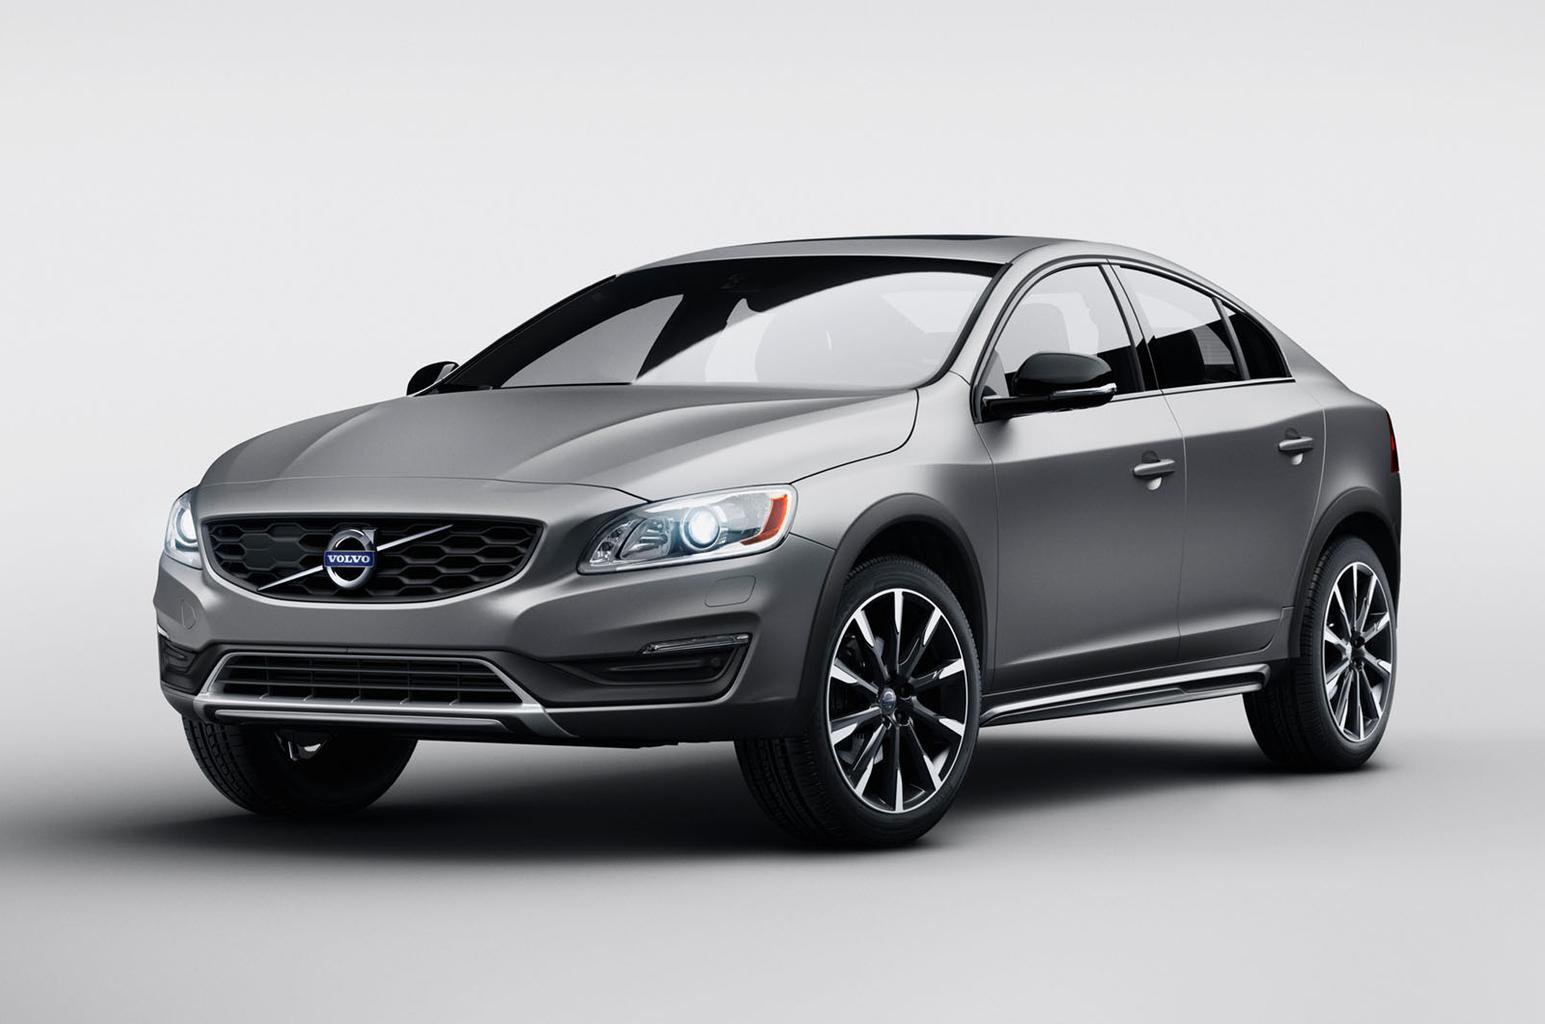 2015 Volvo S60 Cross Country - engine information, on-sale date and rivals to beat